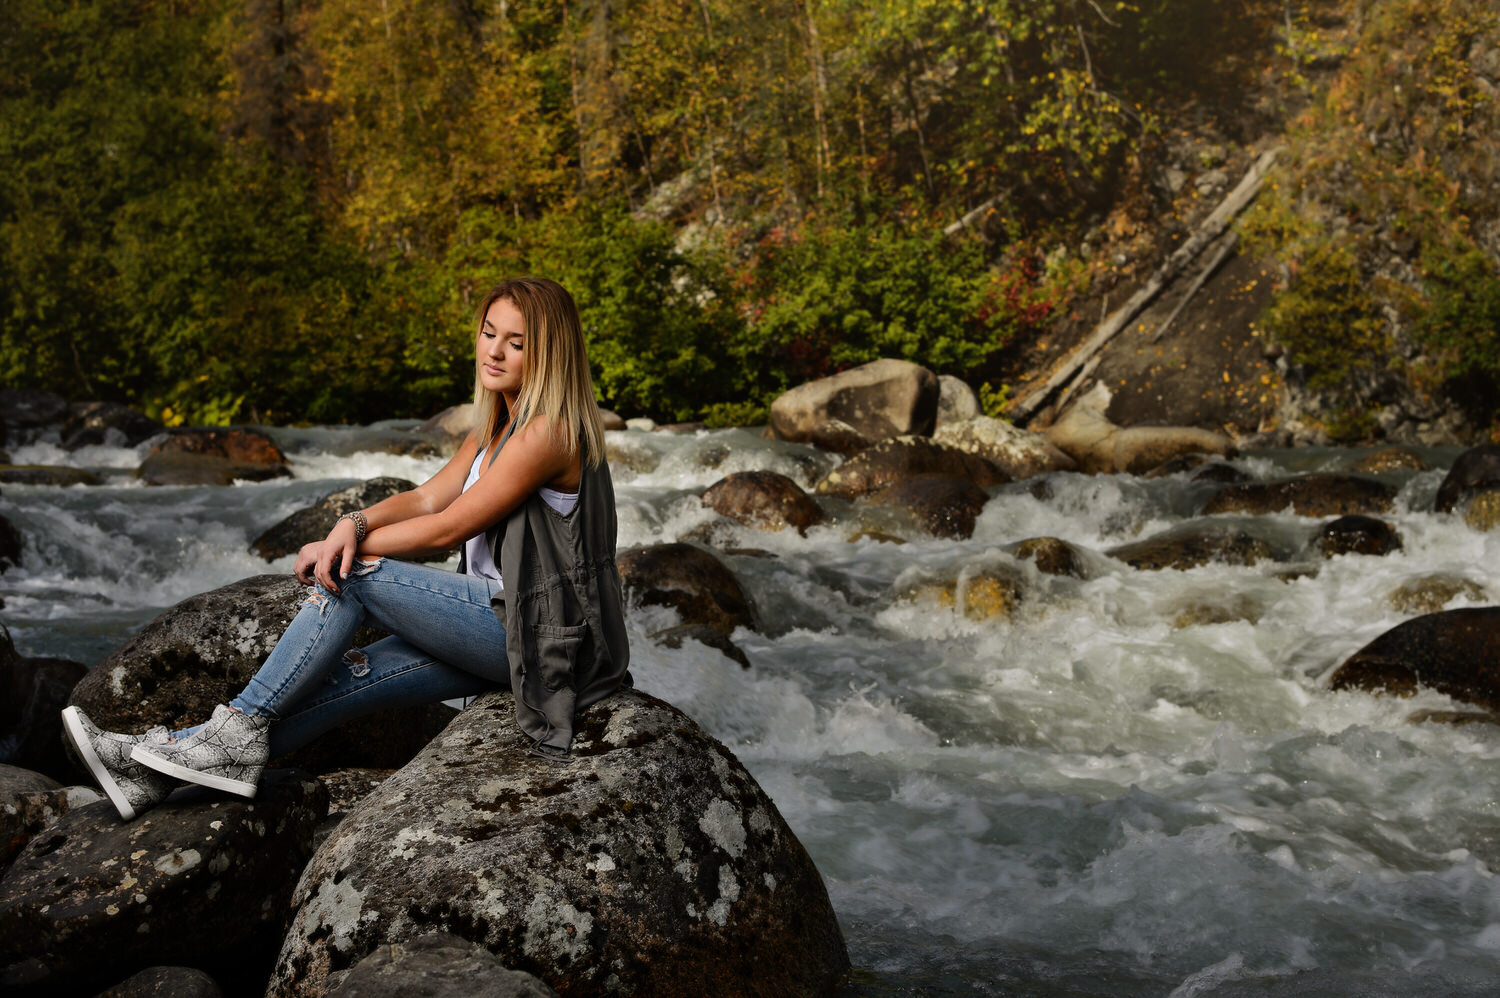 Senior portrait on the rocks by the river